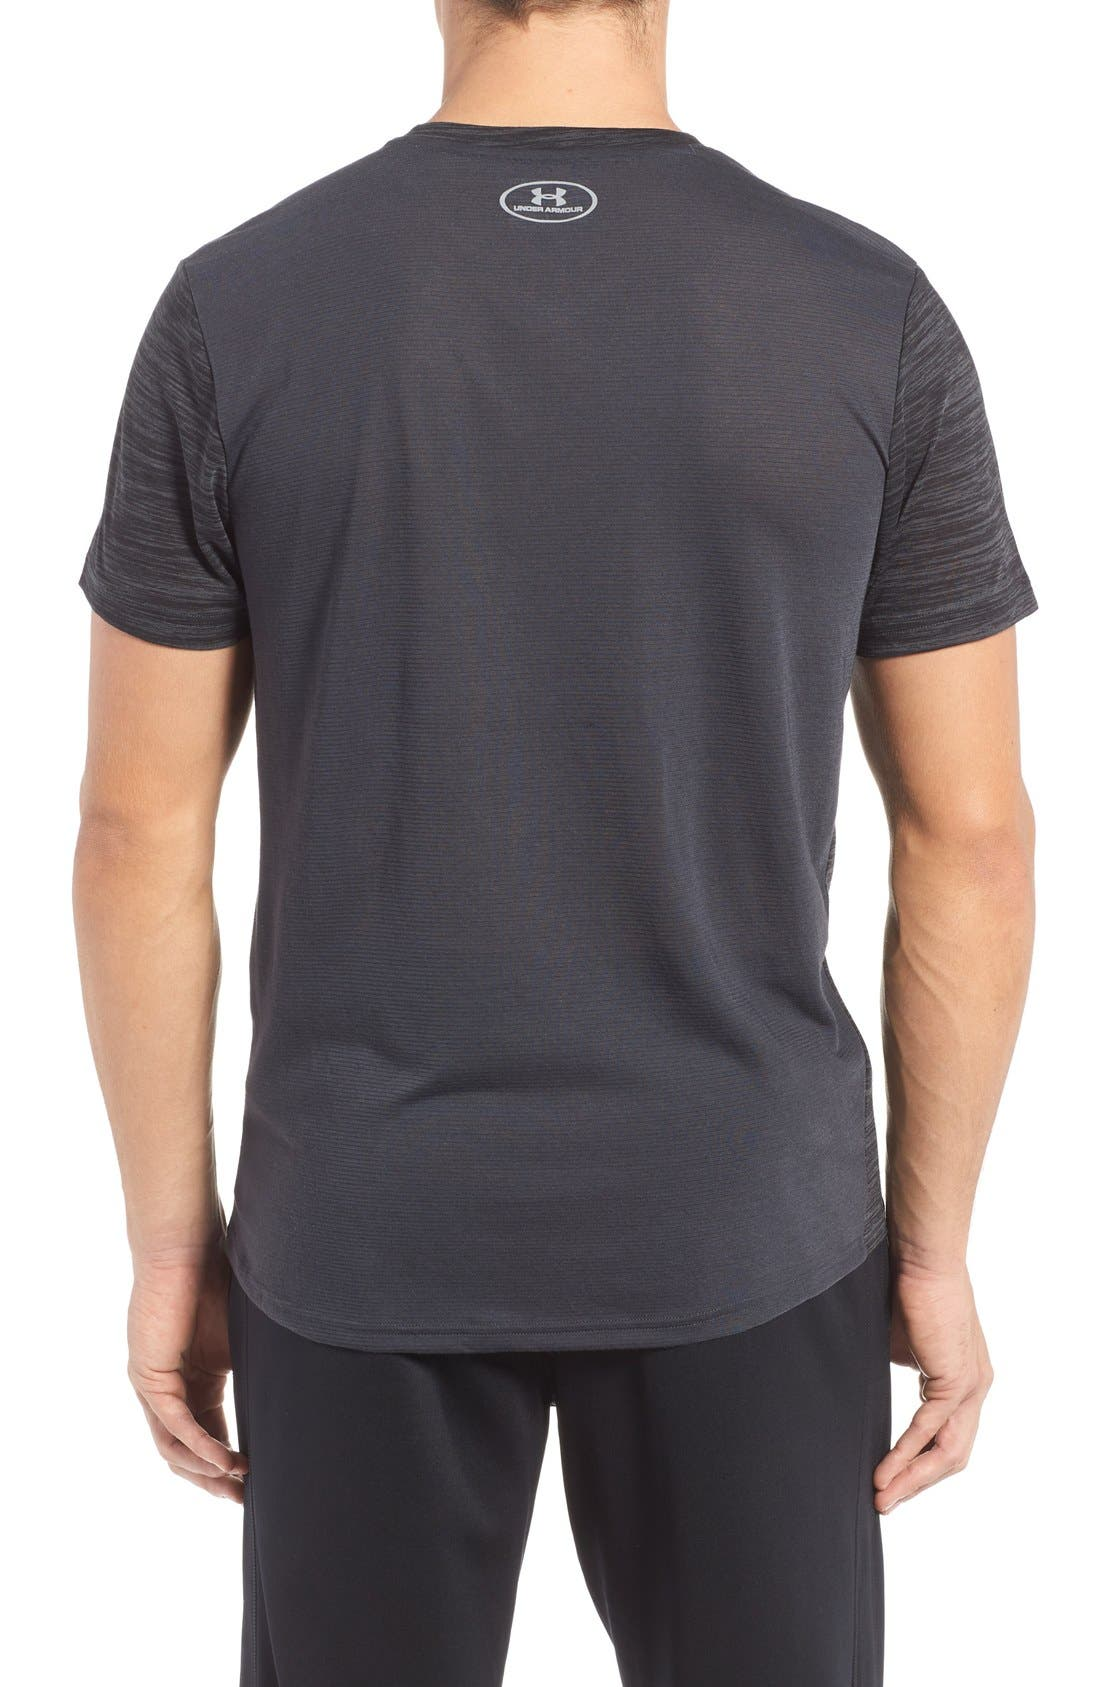 'Streaker Run' Microthread V-Neck T-Shirt,                             Alternate thumbnail 2, color,                             Anthracite/ Reflective Silver